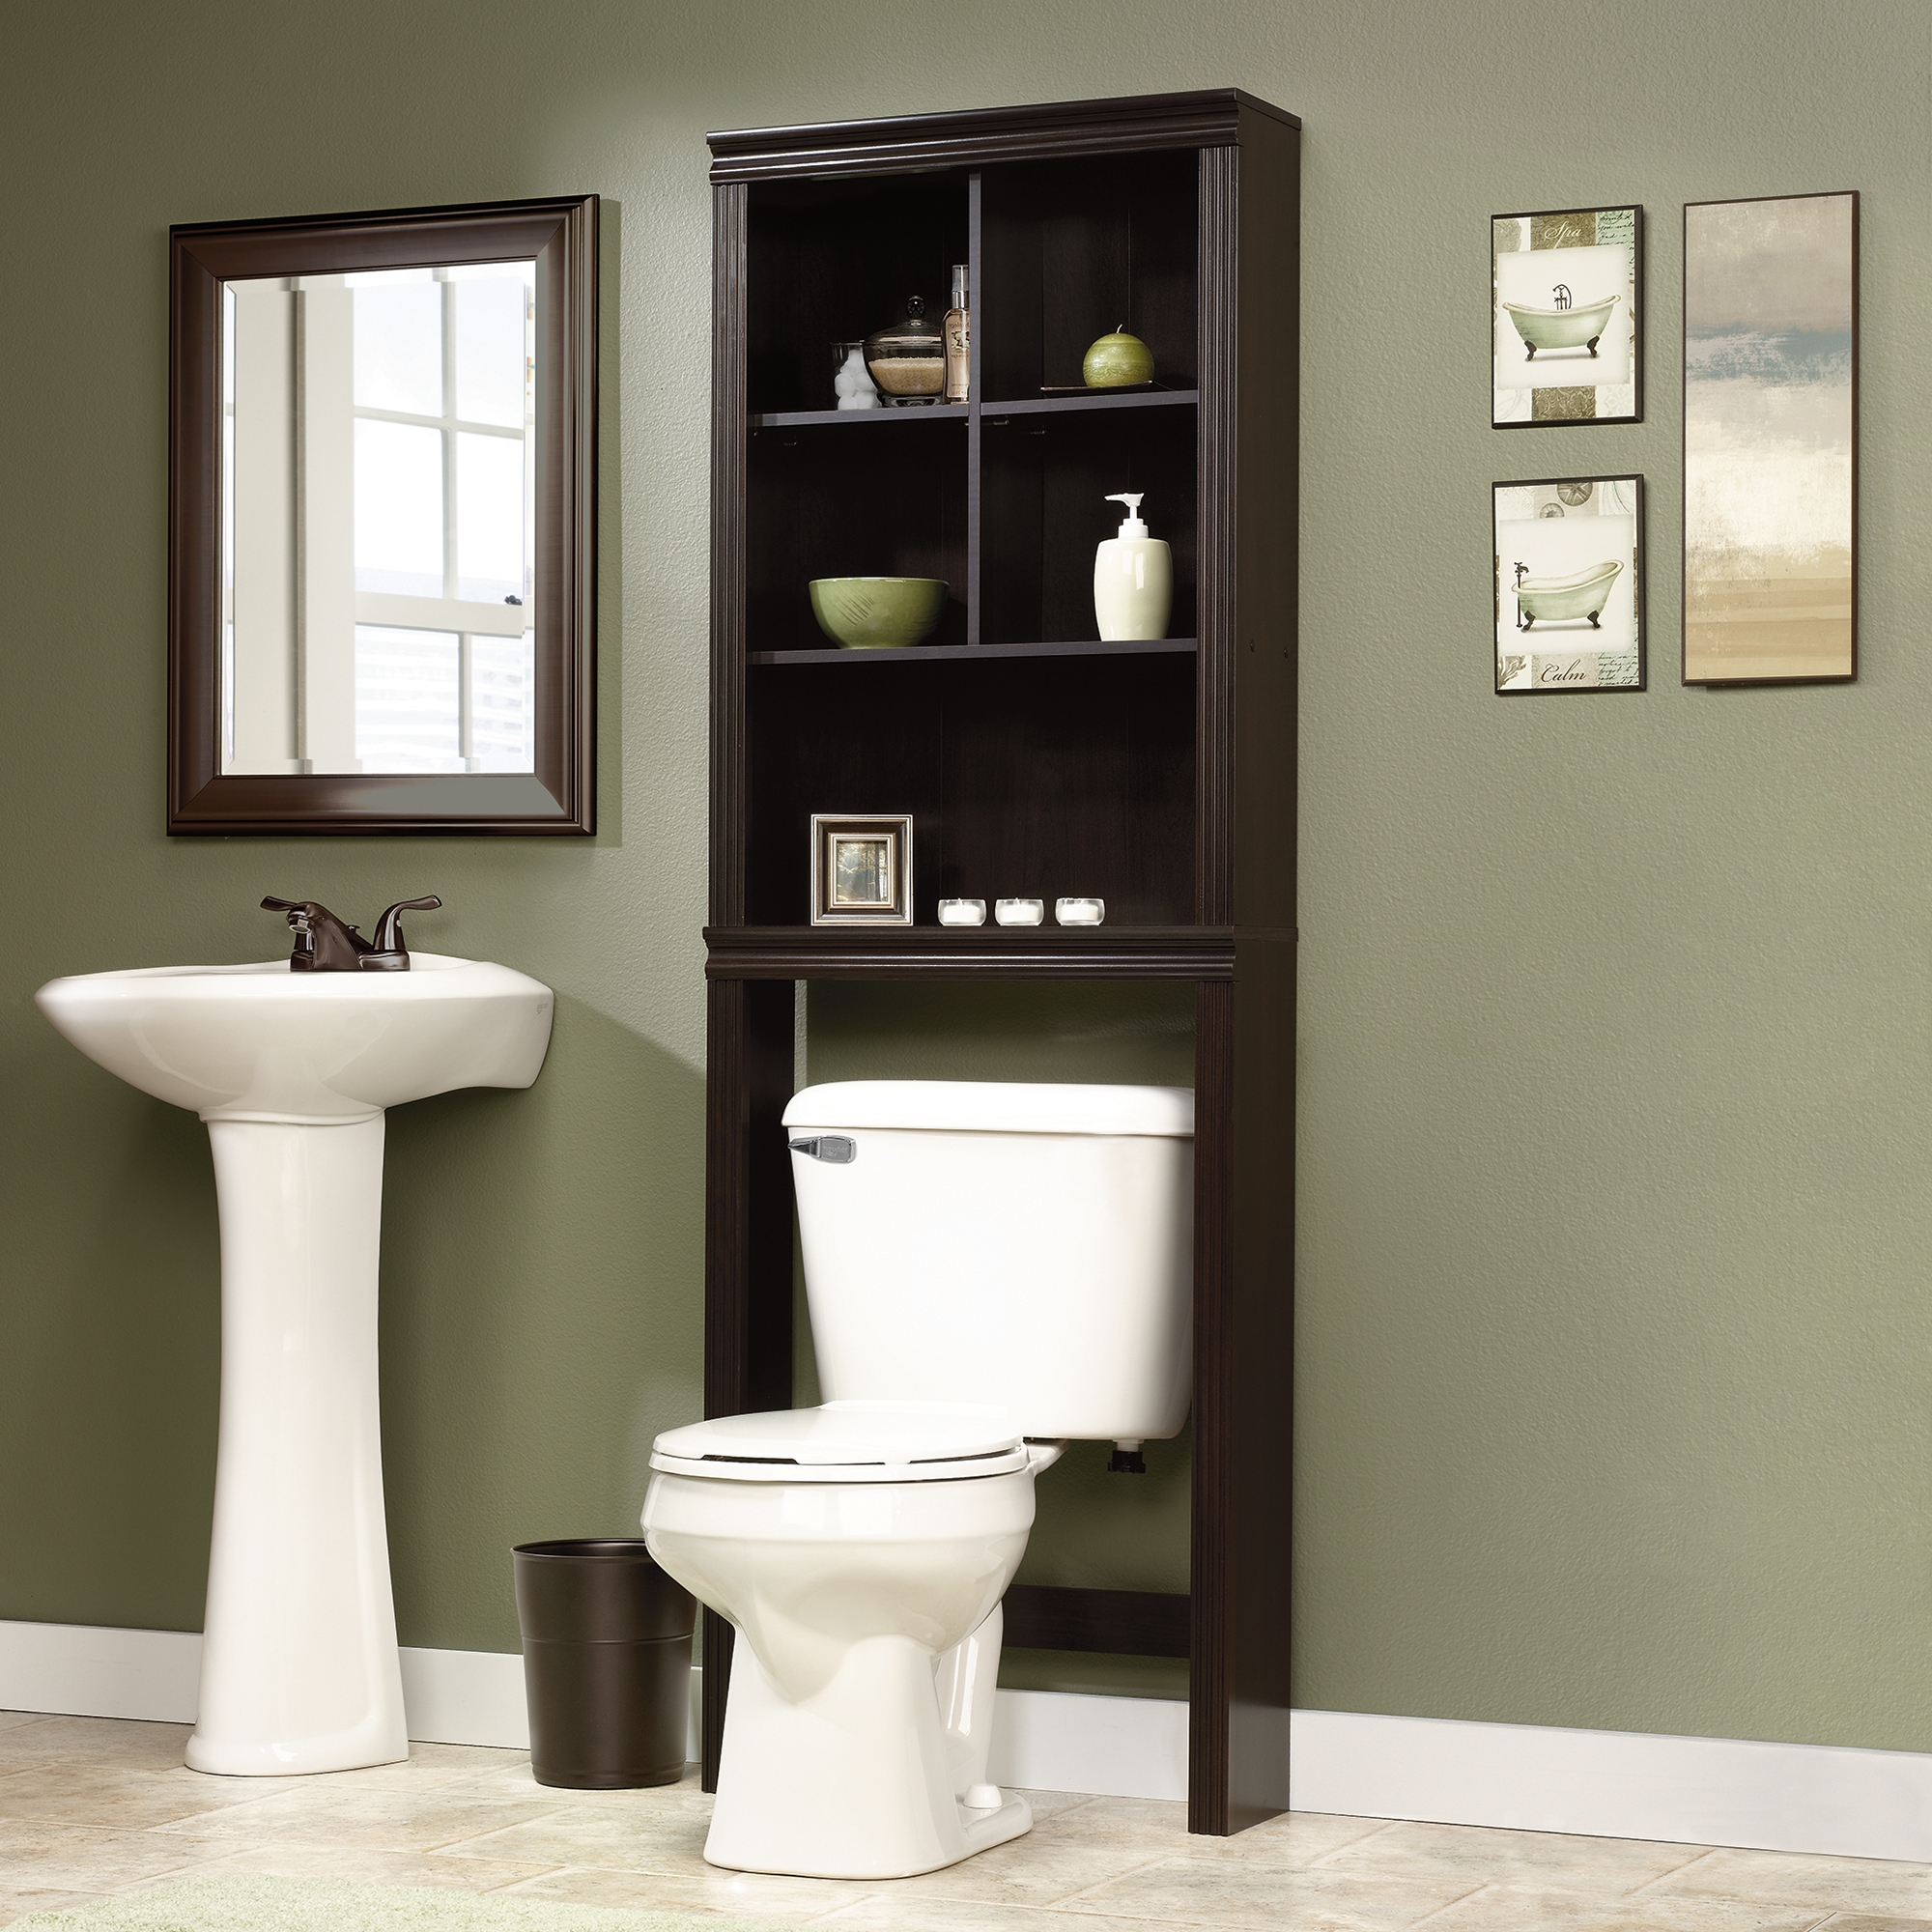 Sauder Bathroom Vanity